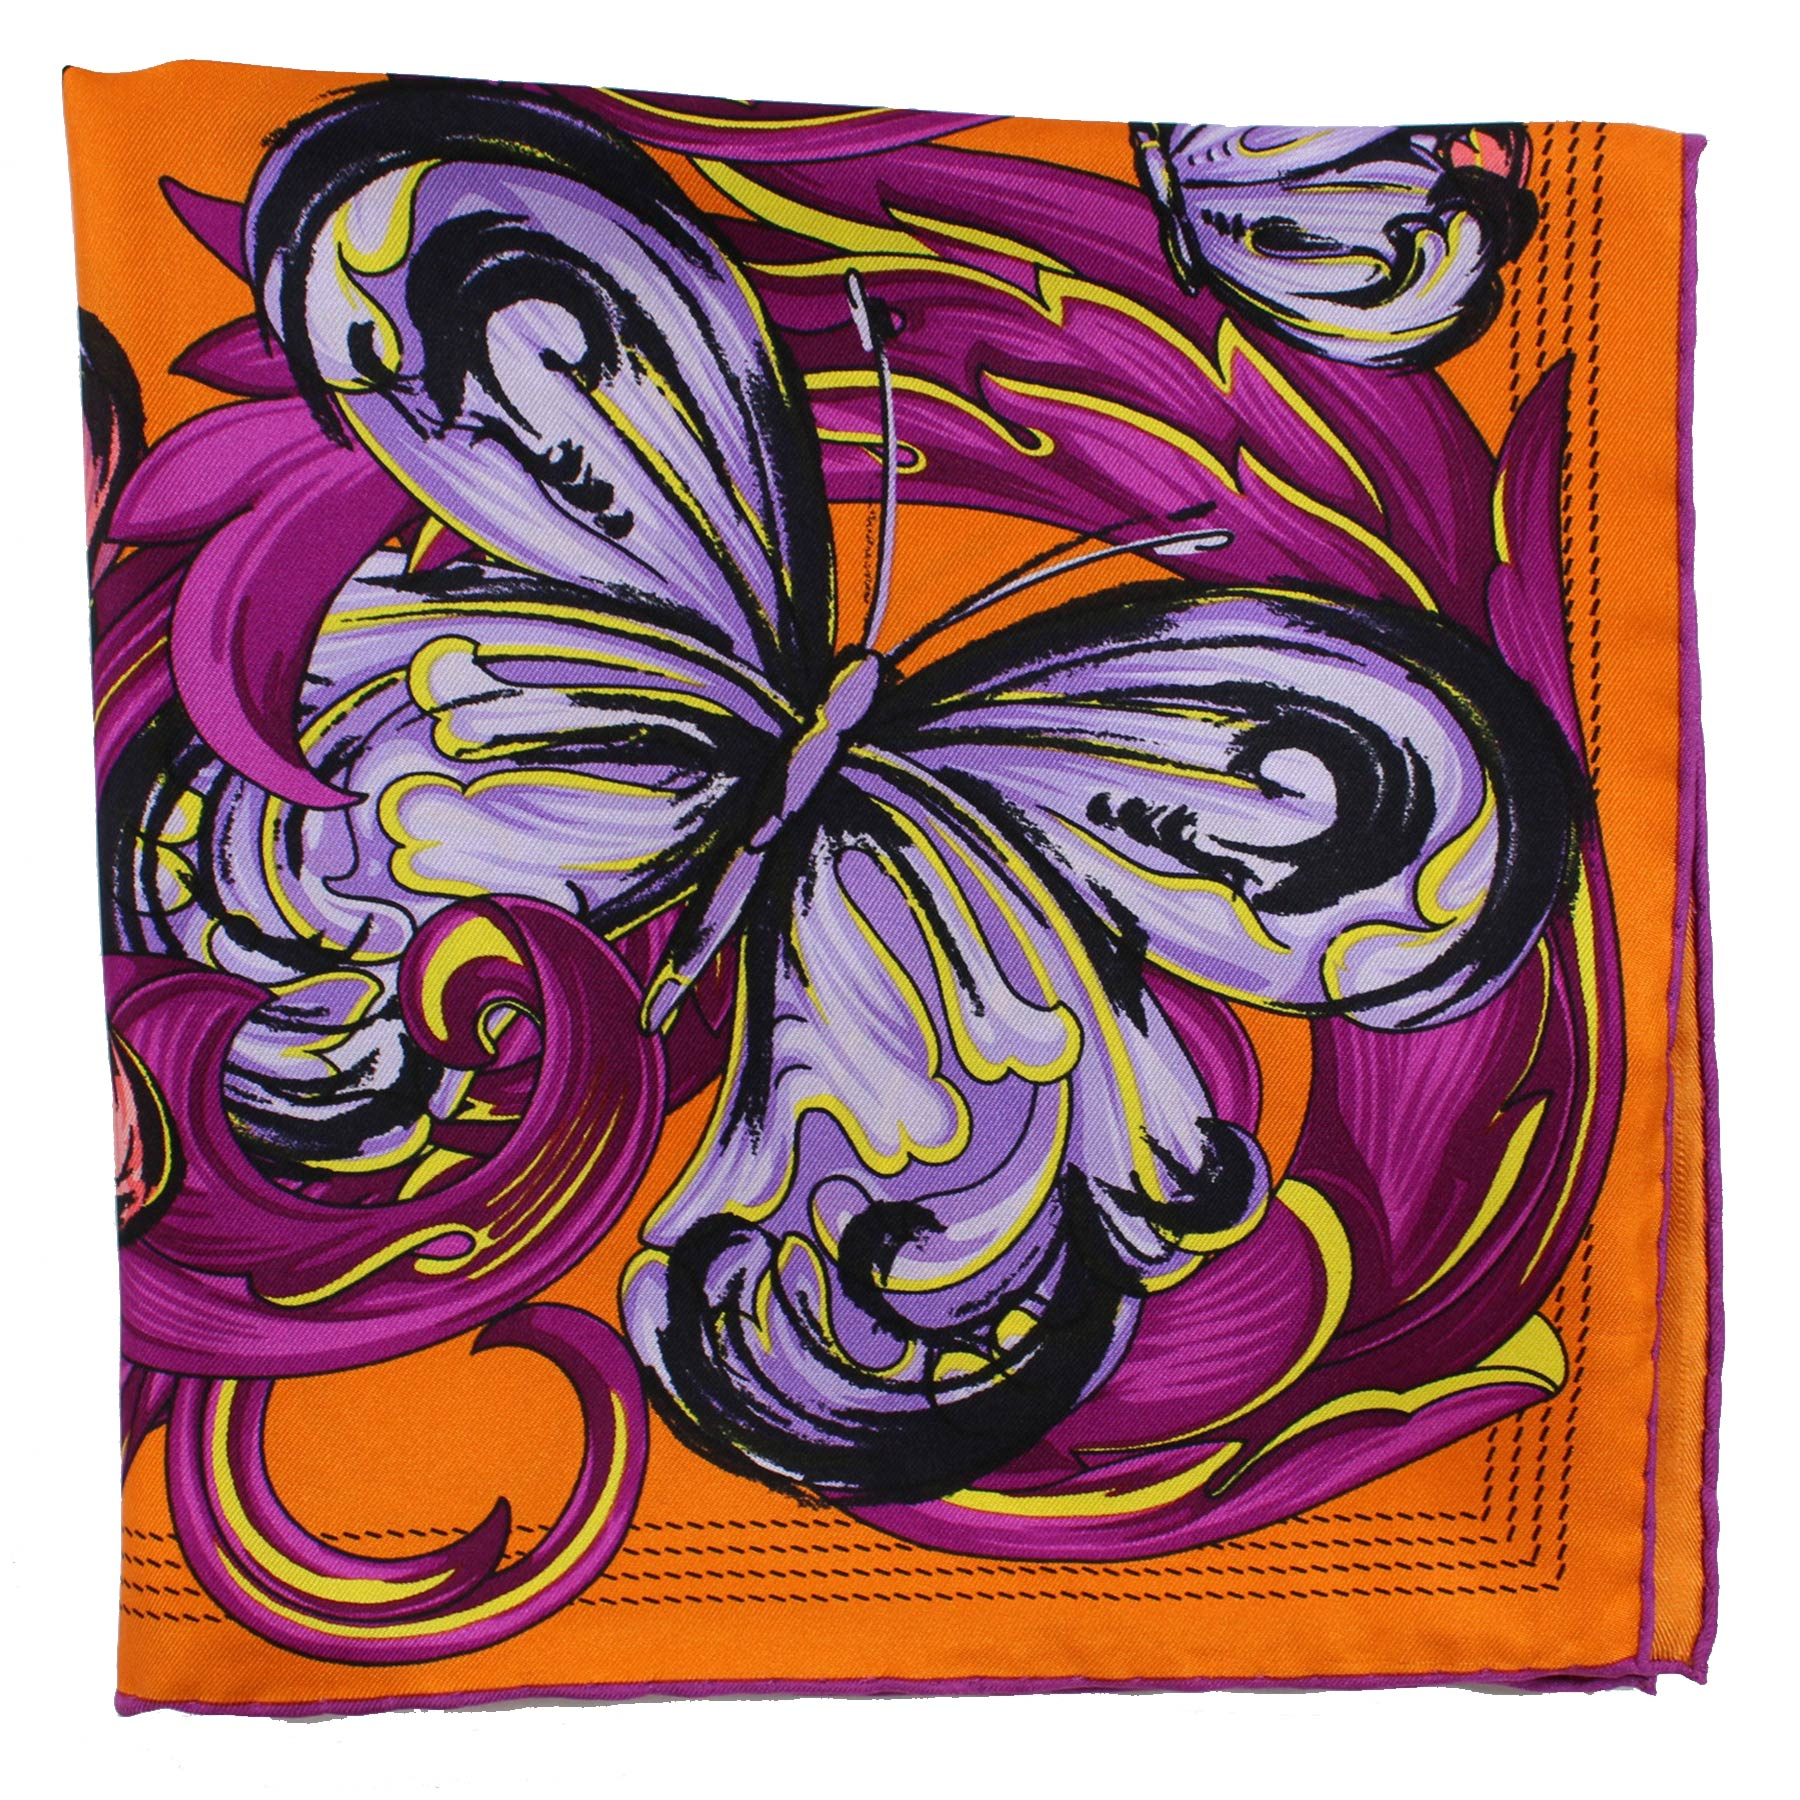 Loewe Scarf Orange Fuchsia Purple Butterfly - Large Twill Silk Square Scarf